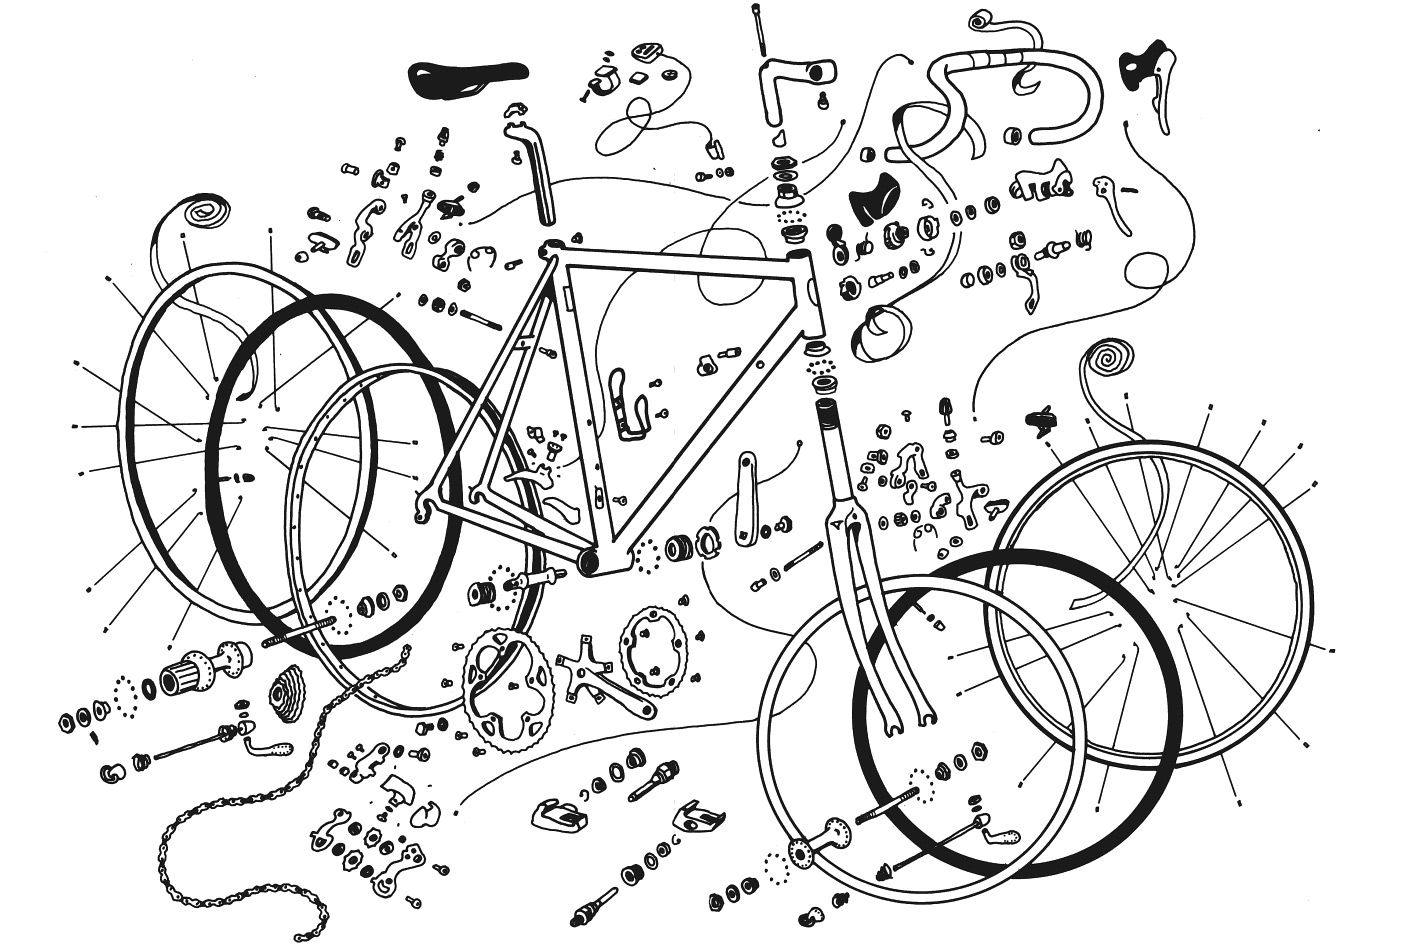 5th Edition Of Zinn The Art Of Road Bike Maintenance Gets At Old